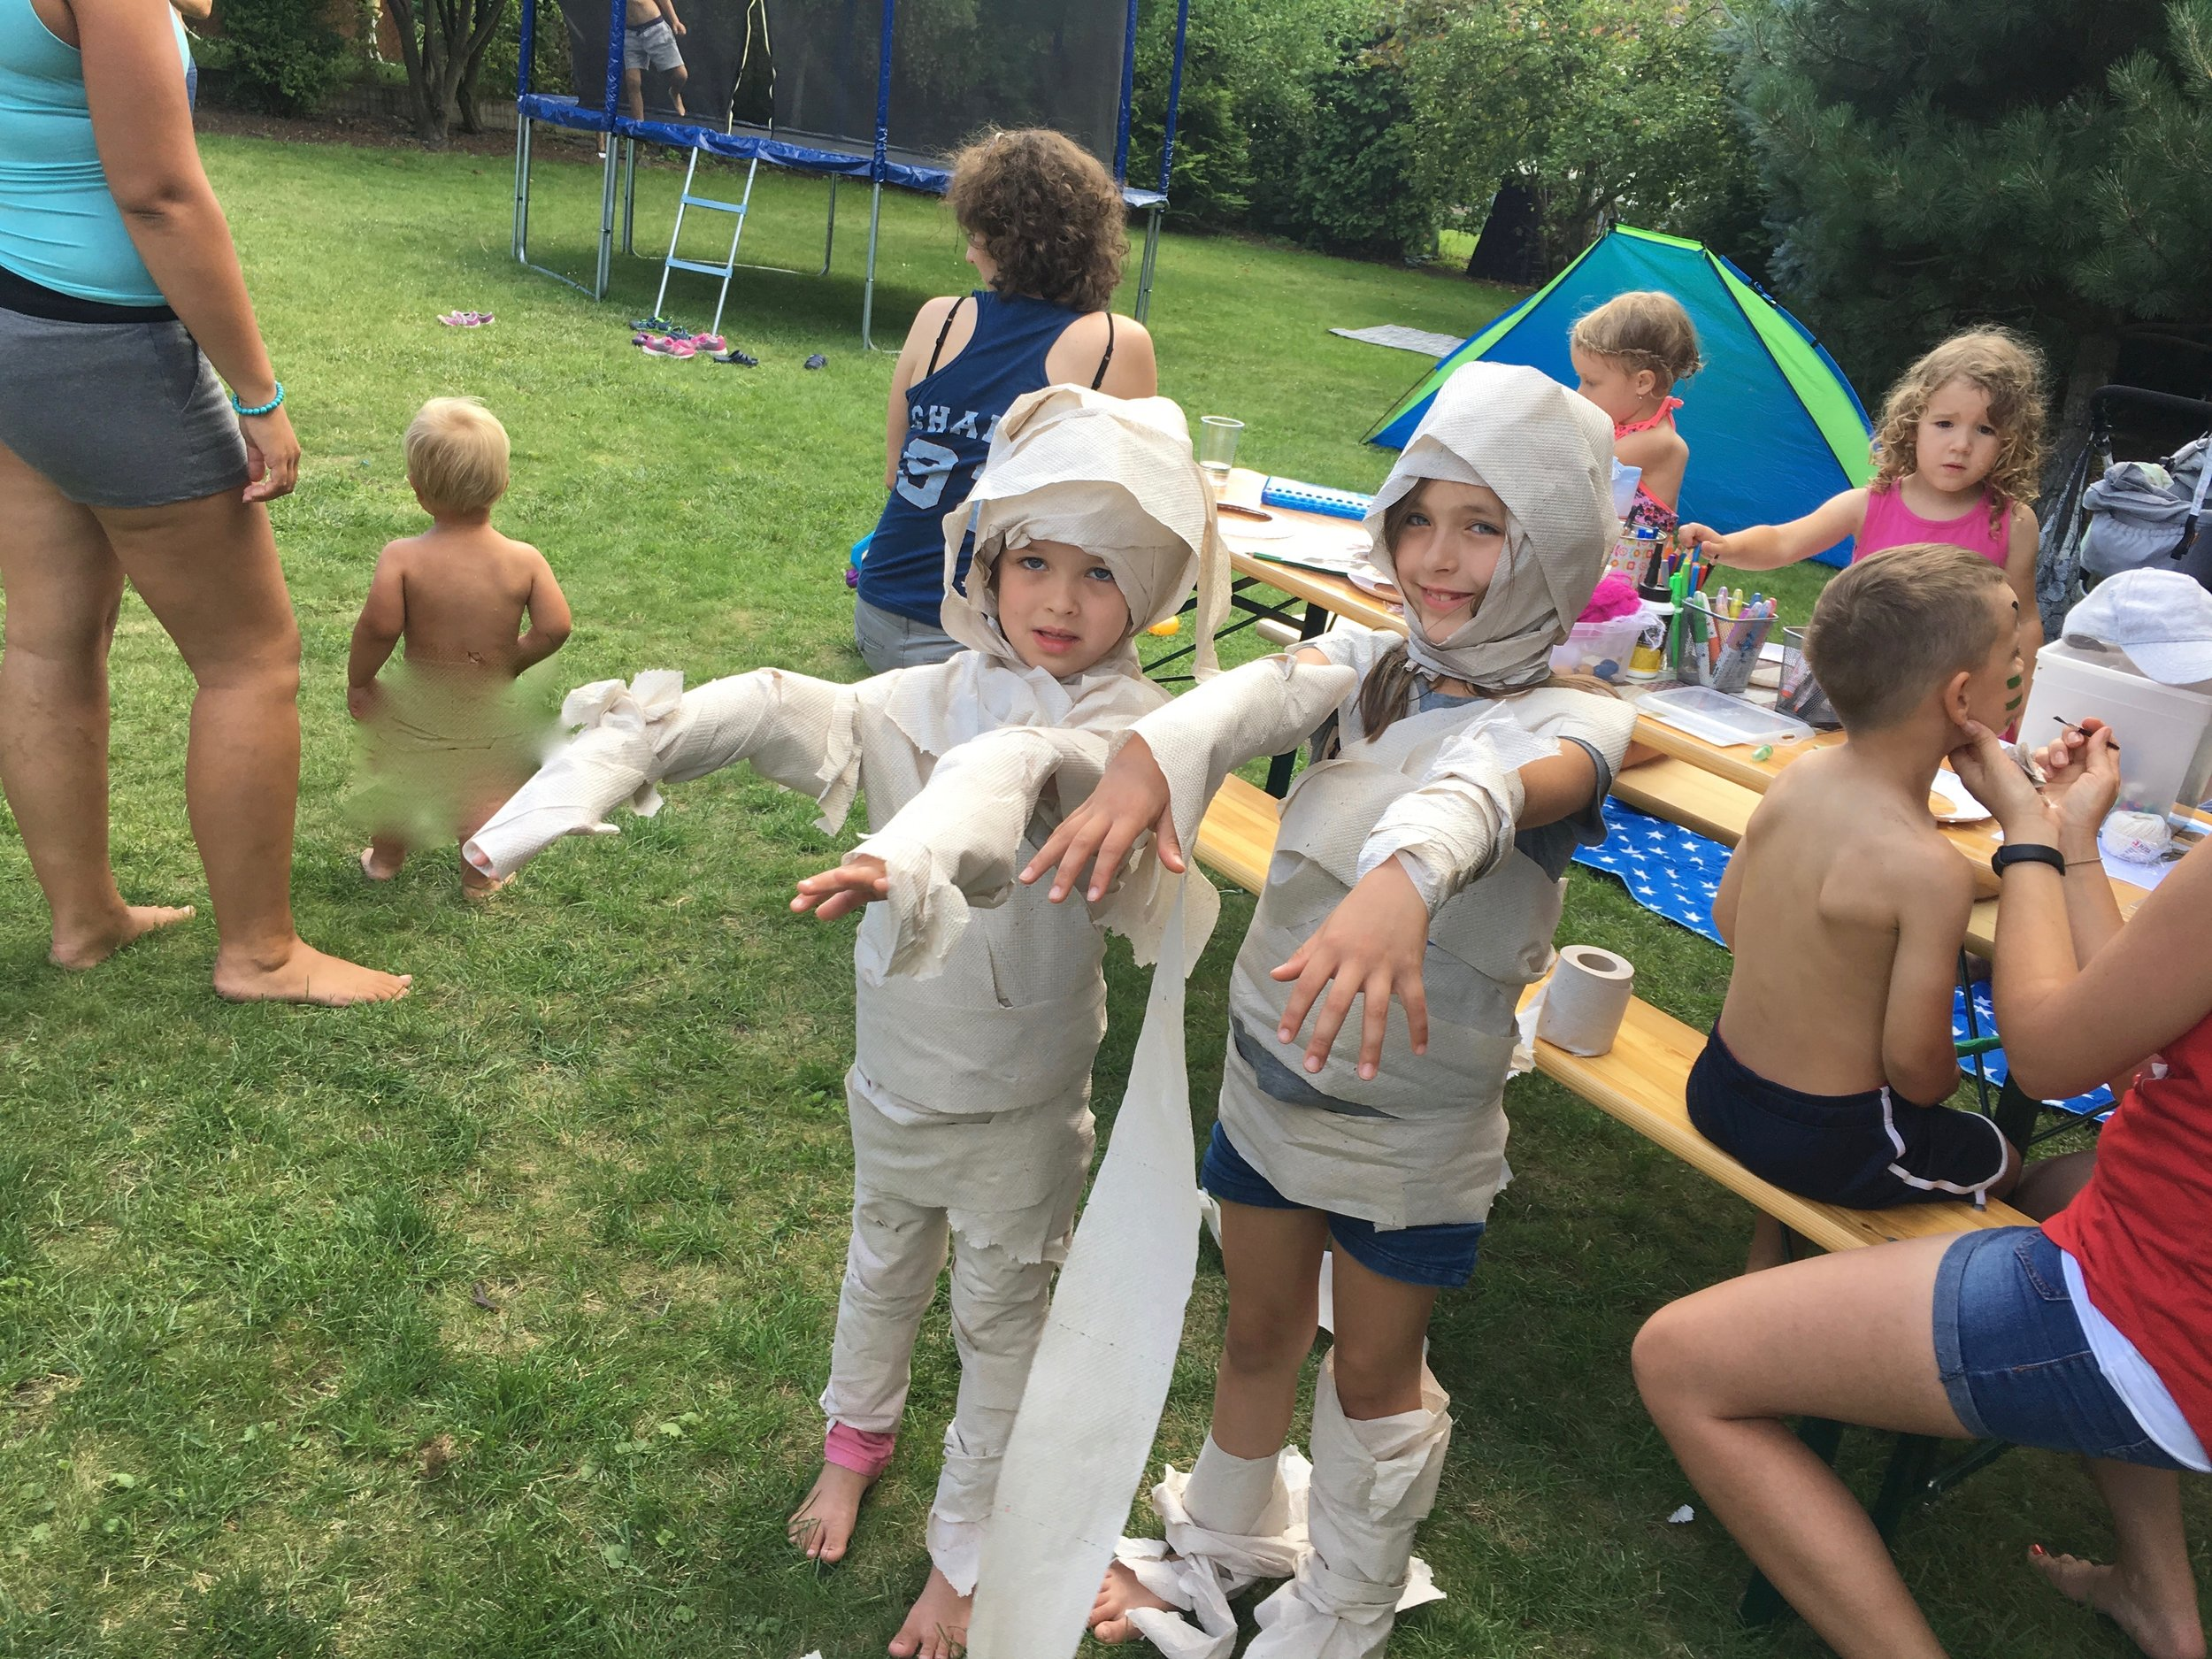 The kids made their way to Egypt and turned into mummies.